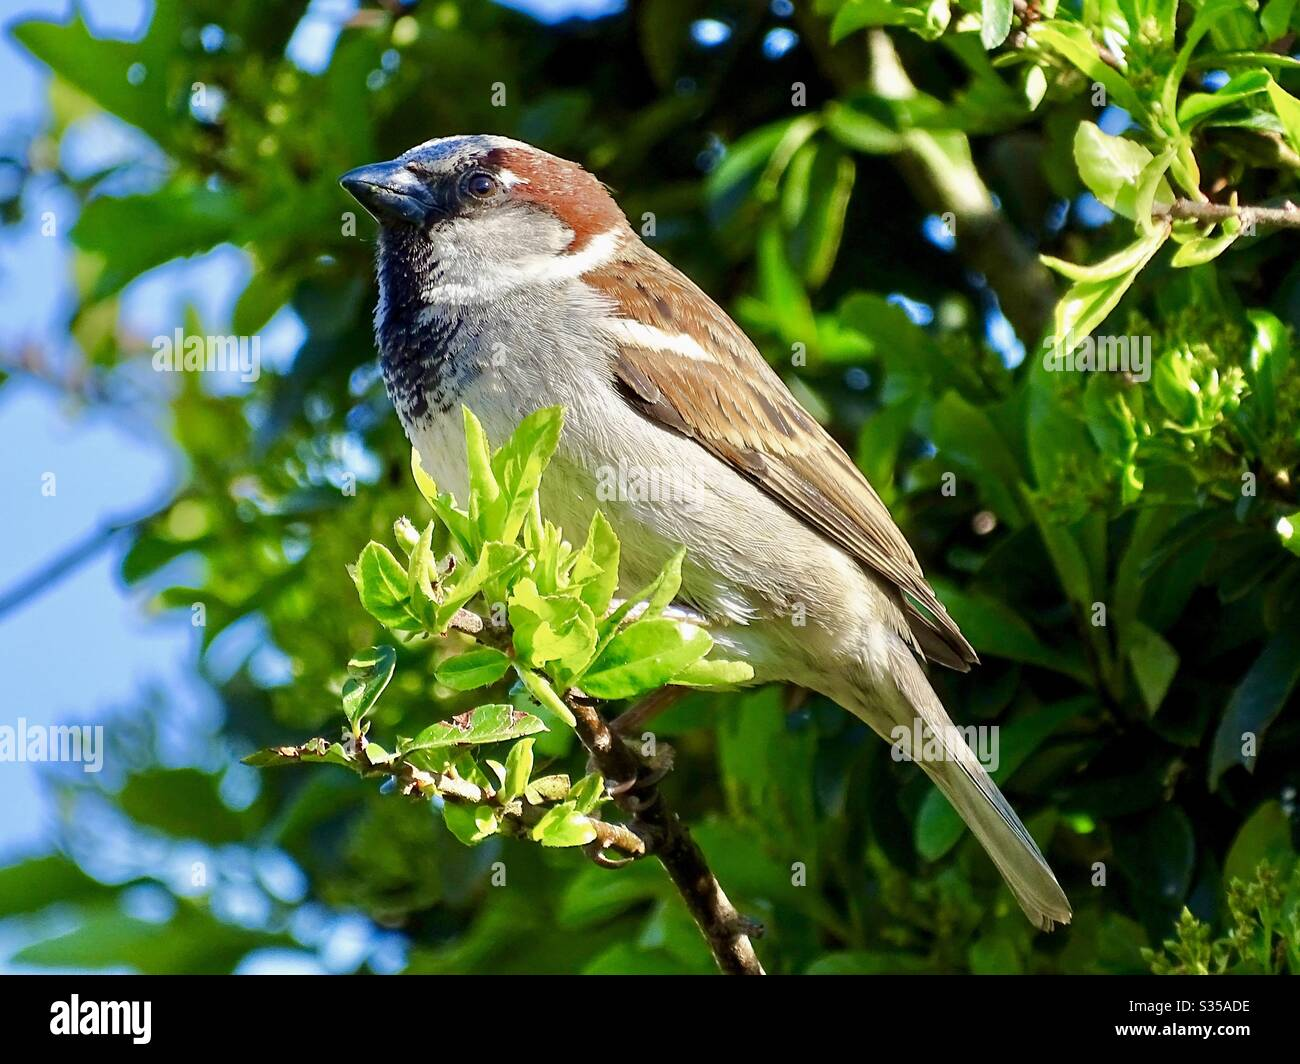 Beautiful Sparrow Bird Perched On A Tree Branch In The Spring Sunshine Stock Photo Alamy